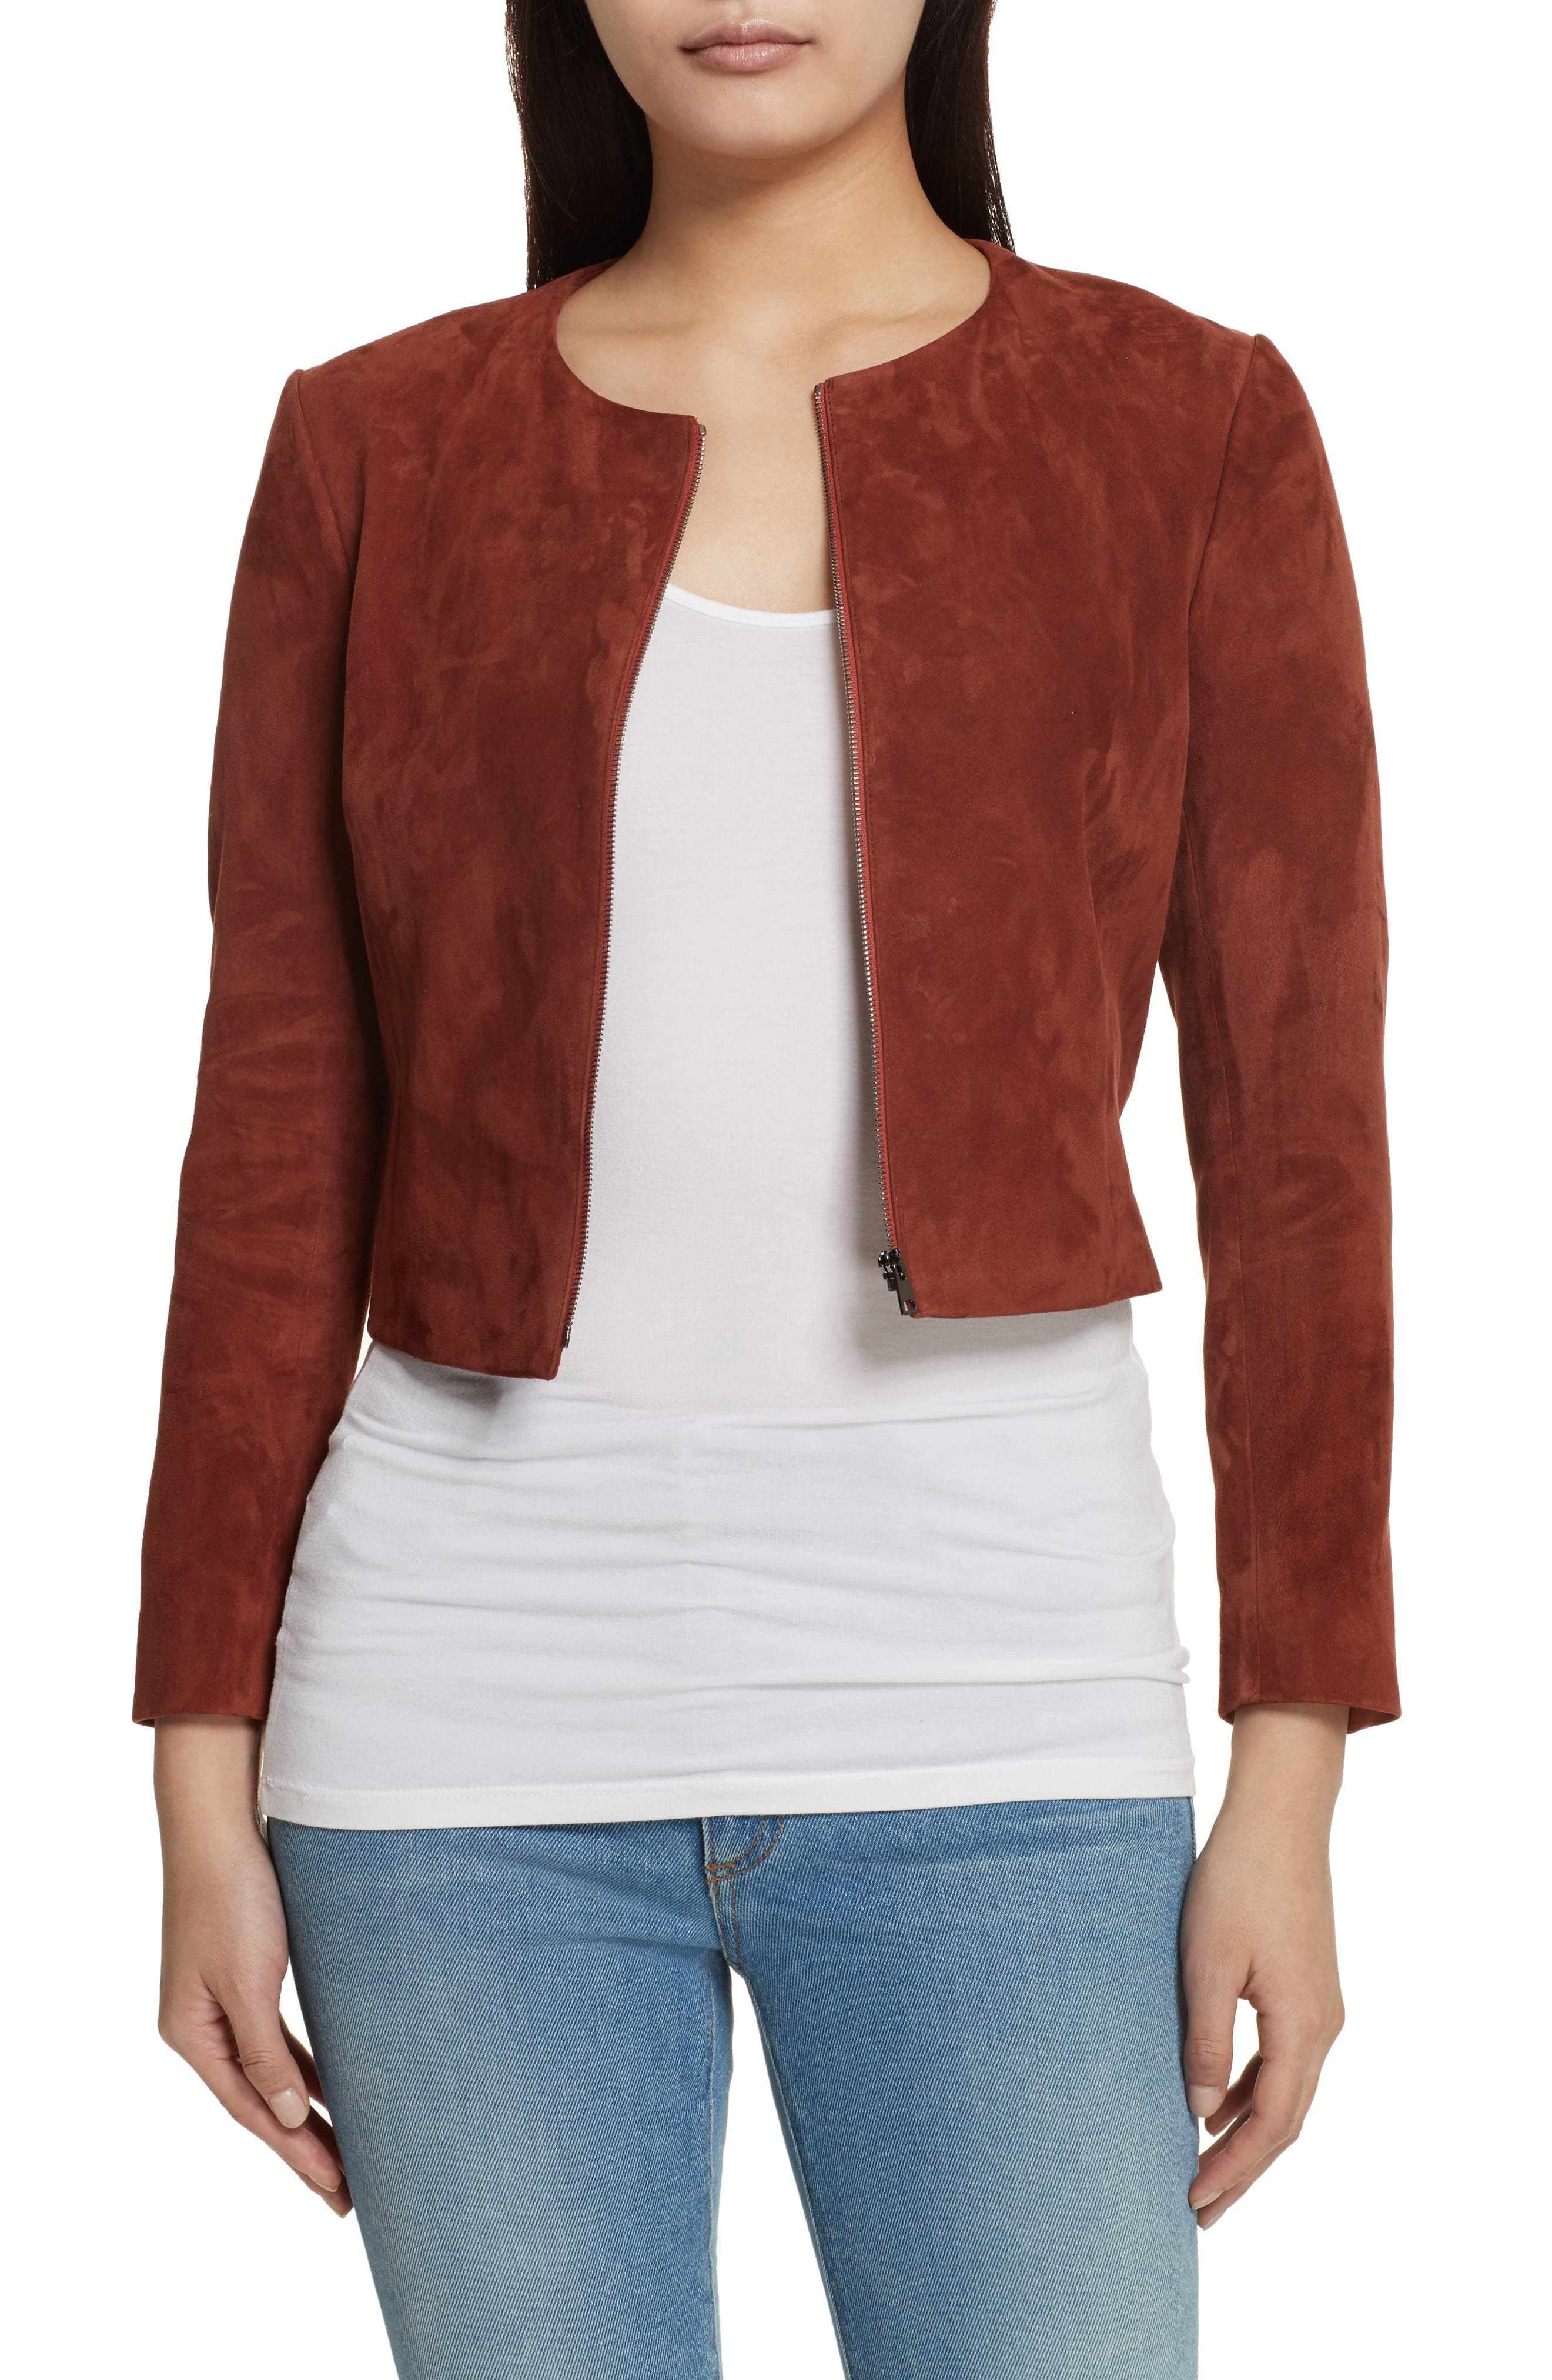 Morene Stretch Suede Jacket,                             Main thumbnail 1, color,                             219